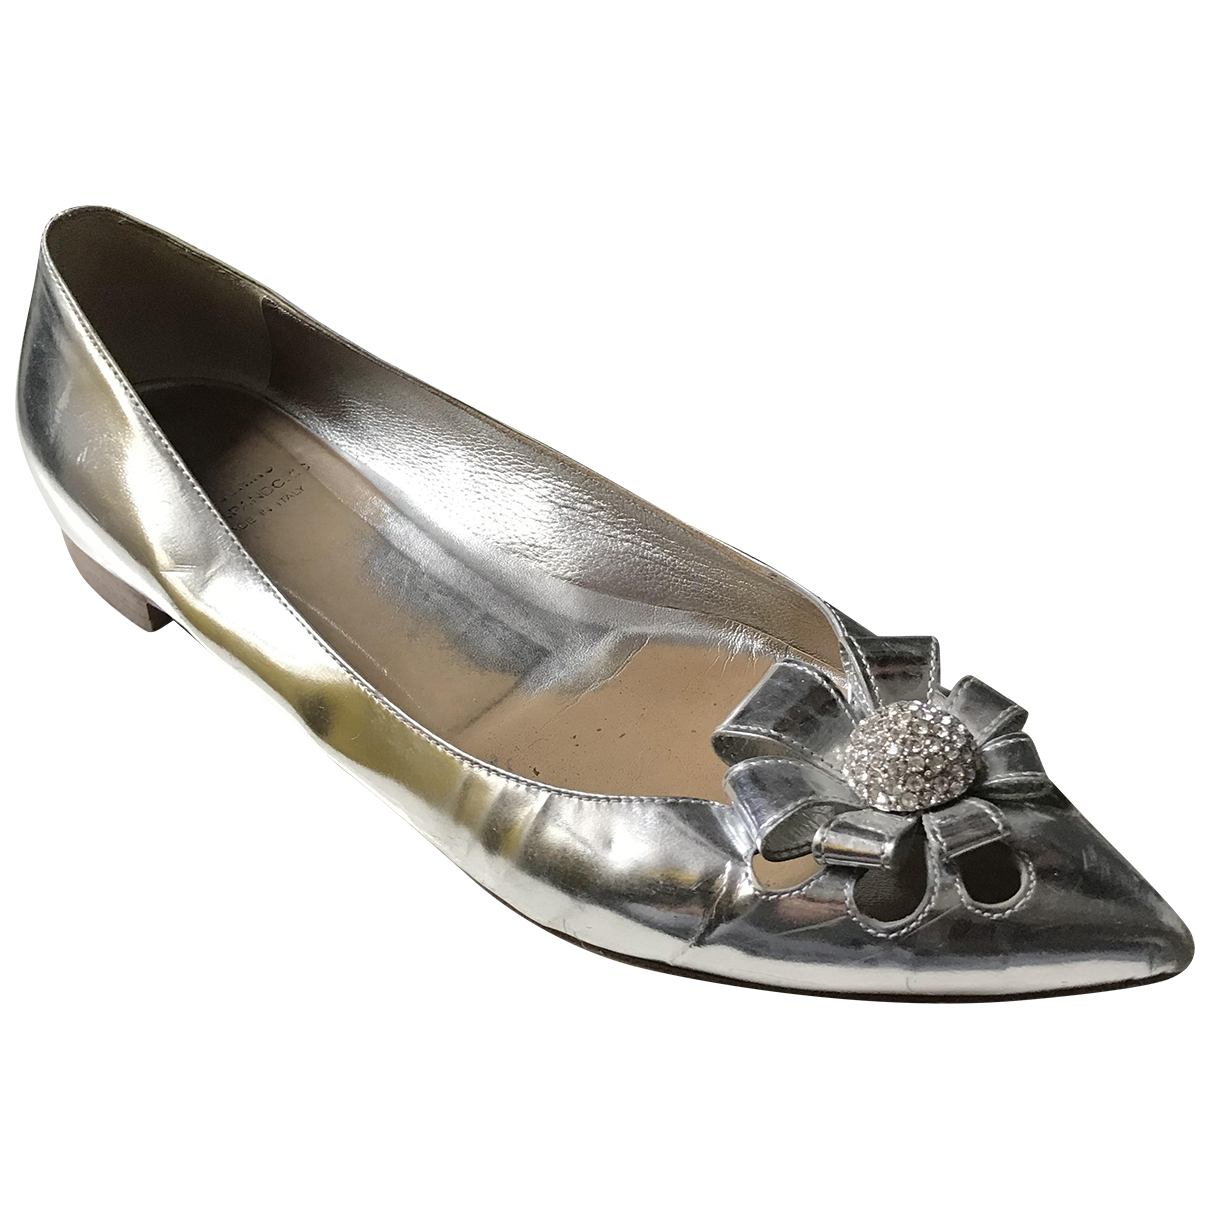 Moschino Cheap And Chic \N Silver Patent leather Flats for Women 40 IT